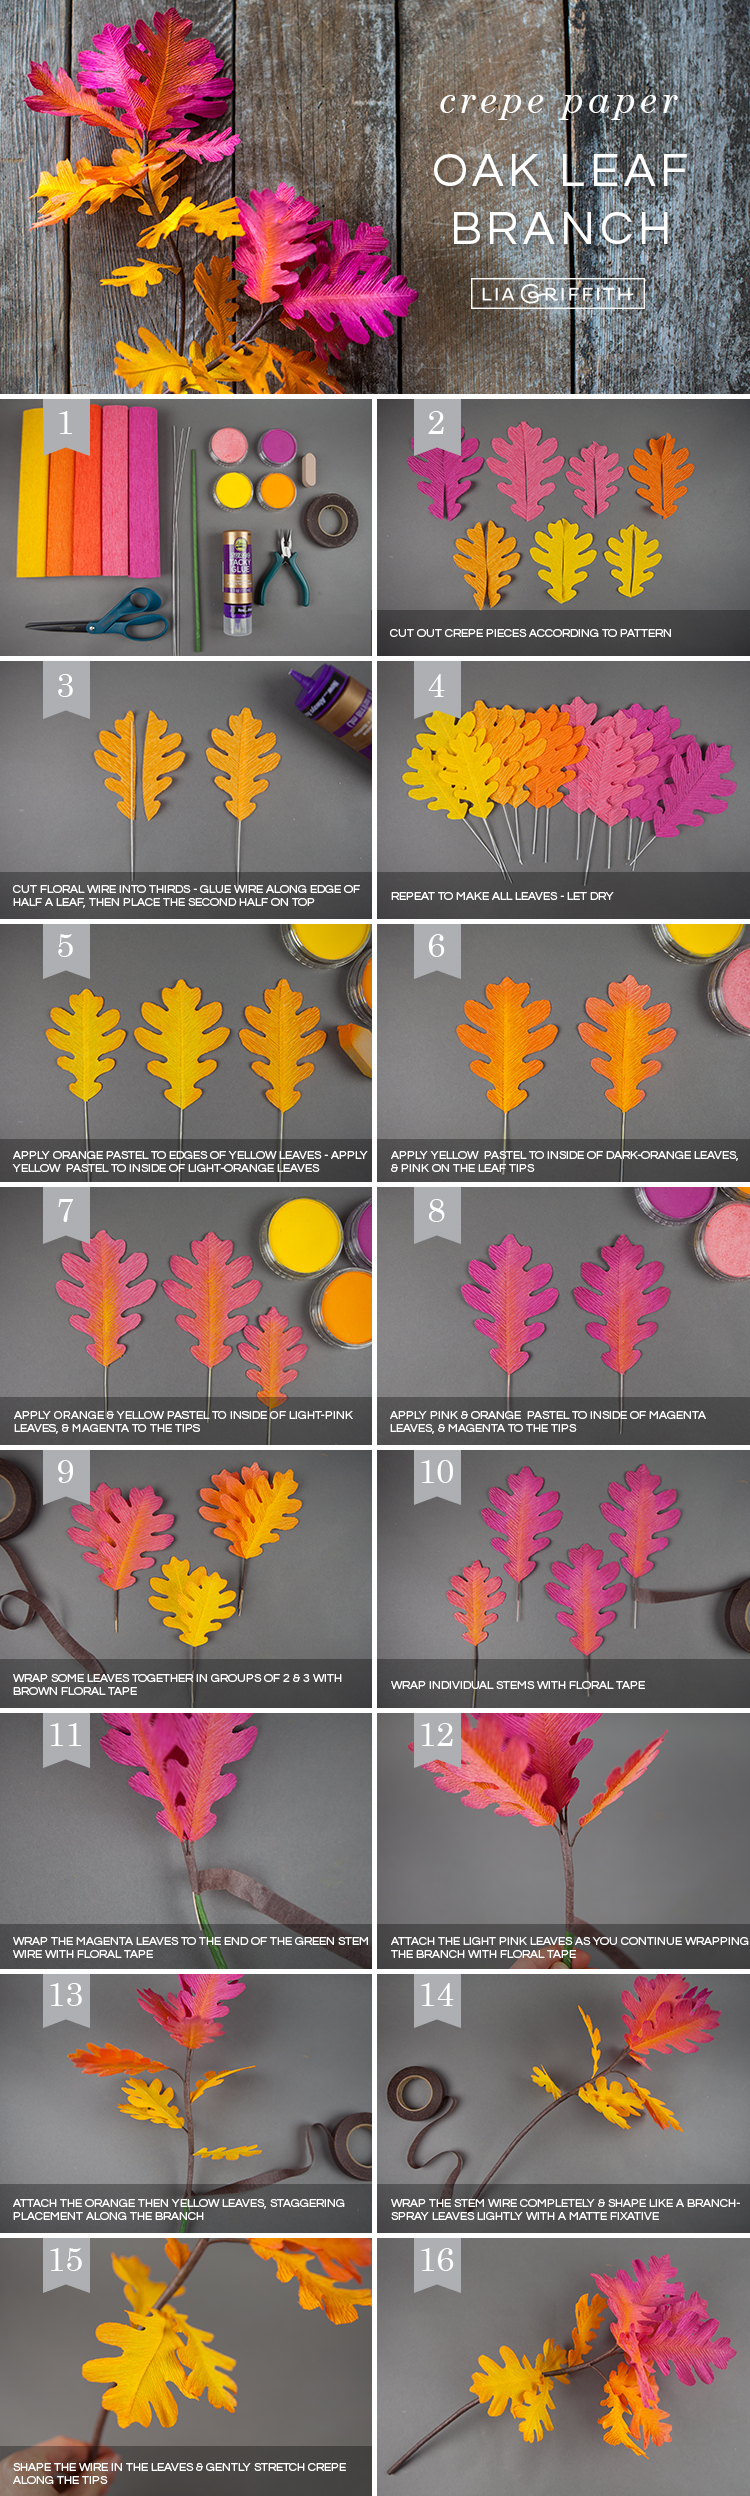 Photo tutorial for crepe paper ombré oak leaf branches by Lia Griffith